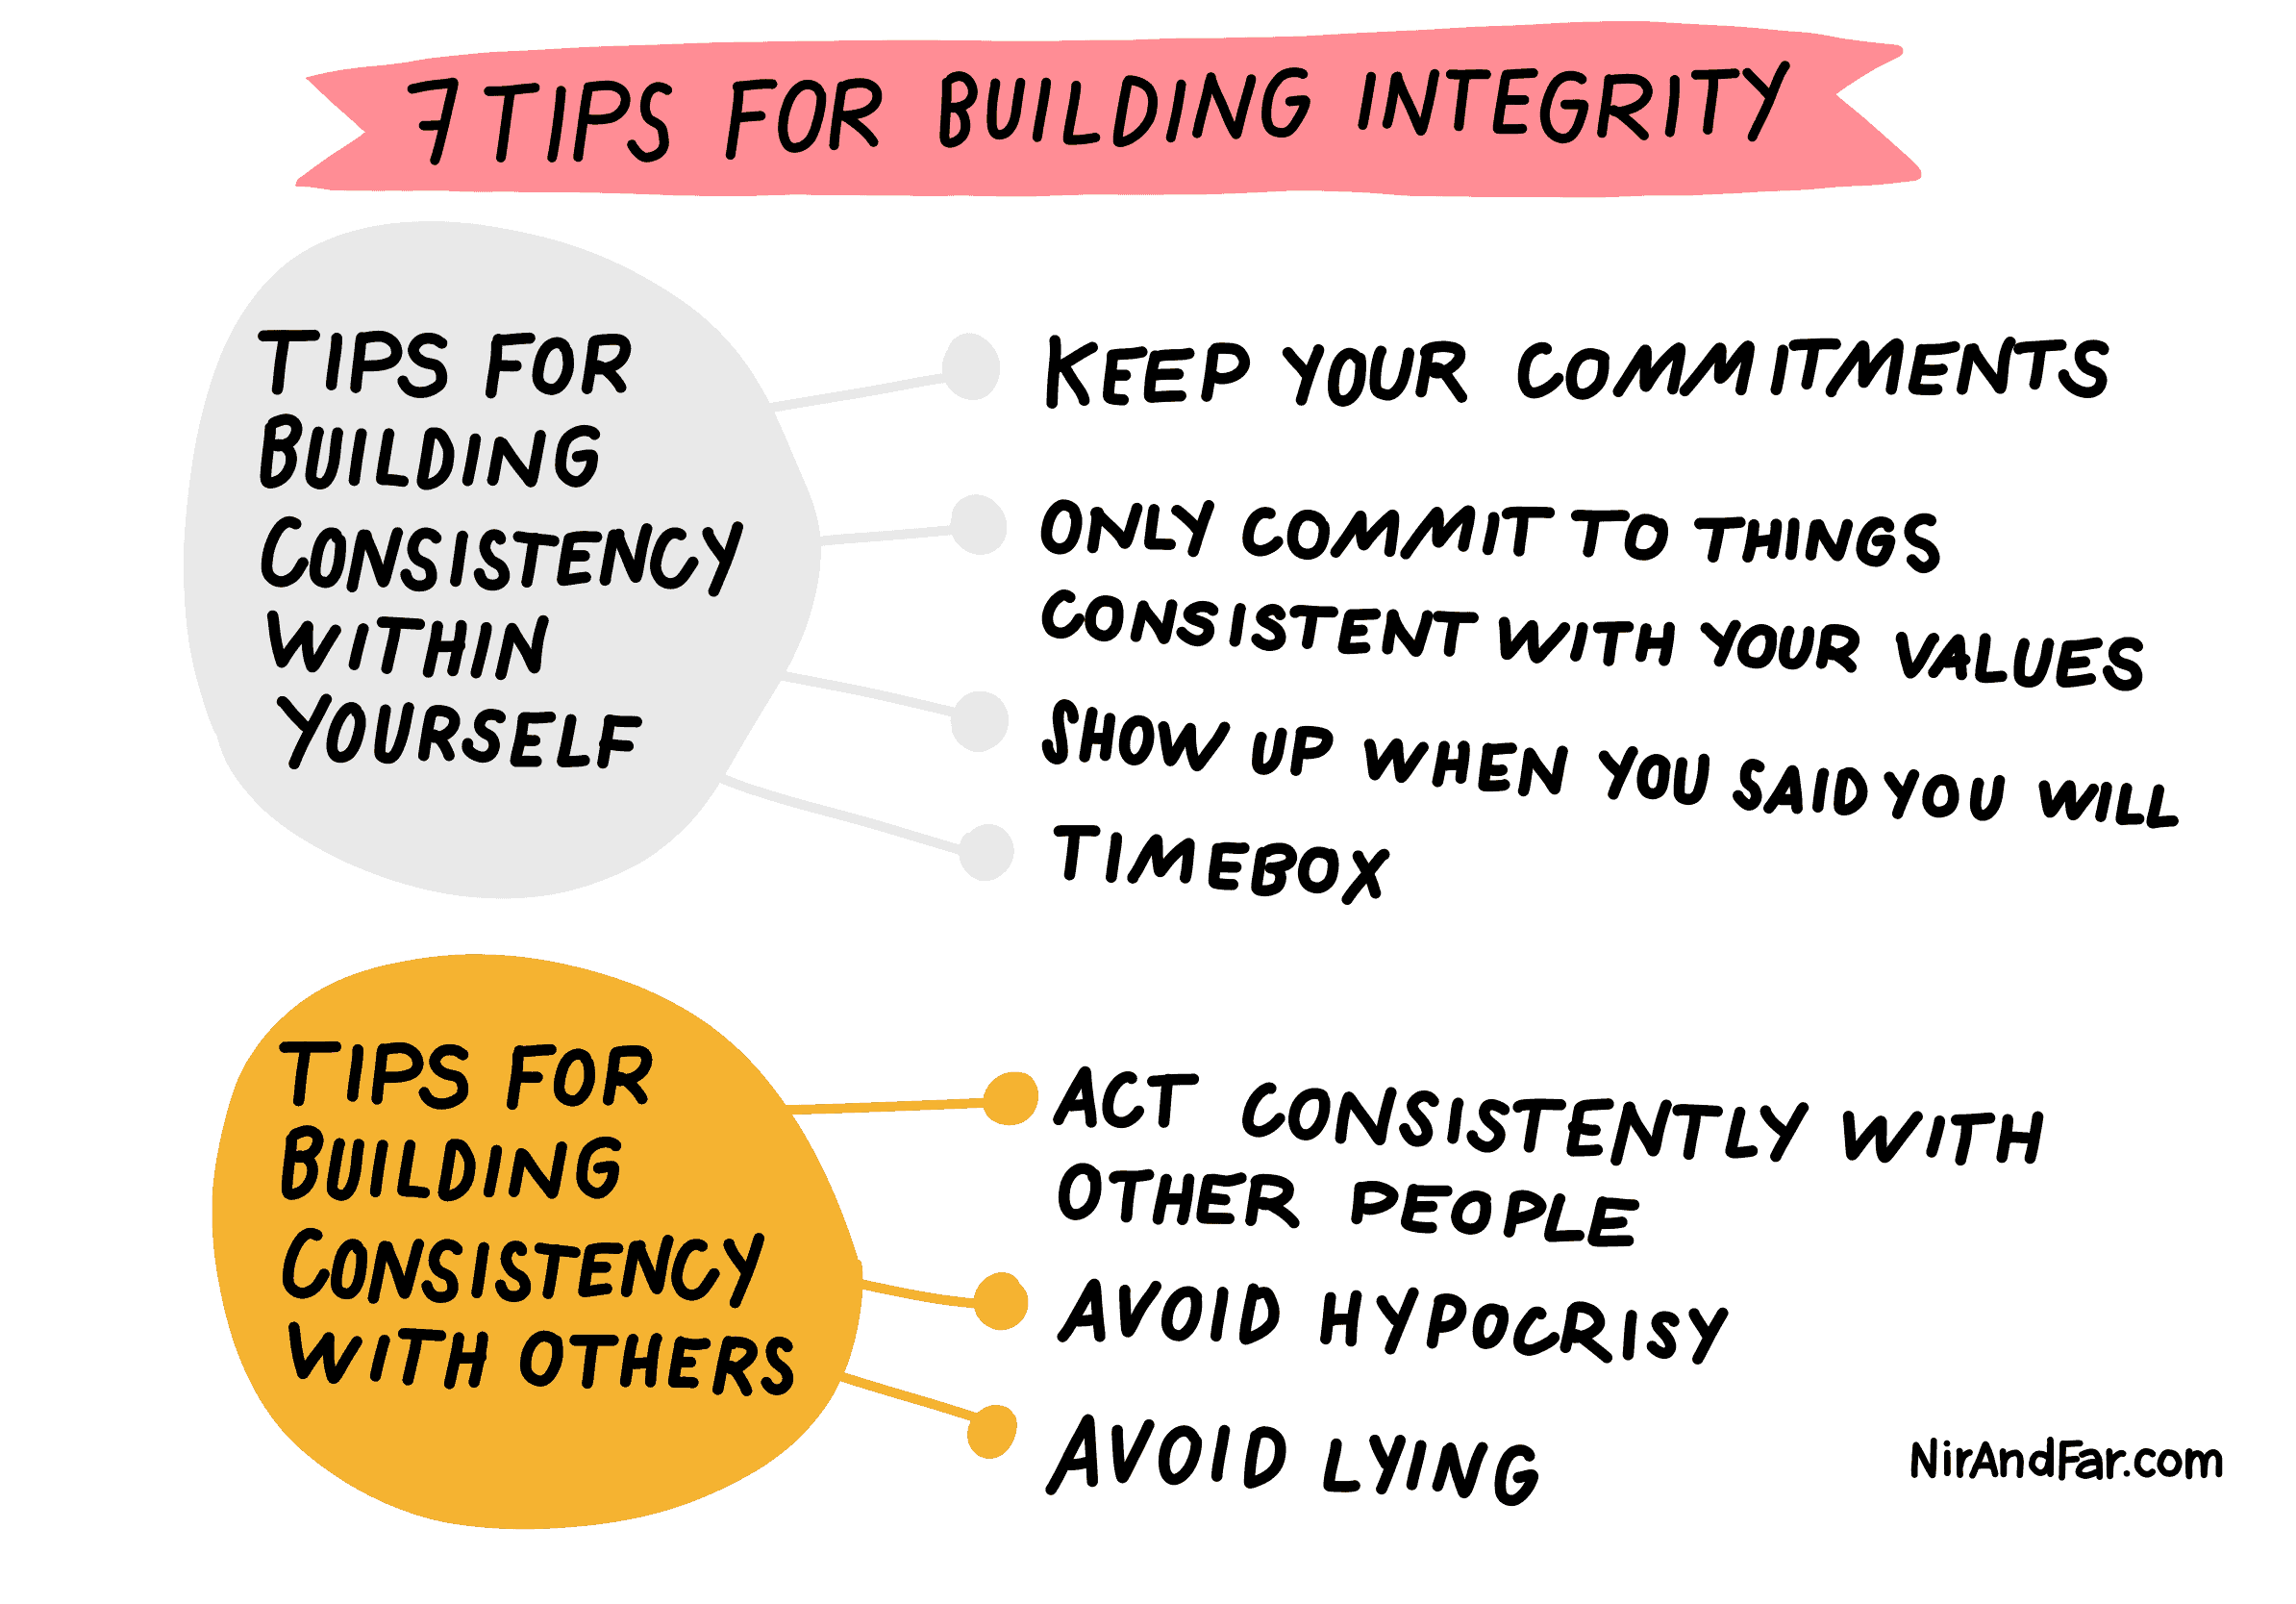 A list of 7 tips for building consistency (integrity) with yourself and others